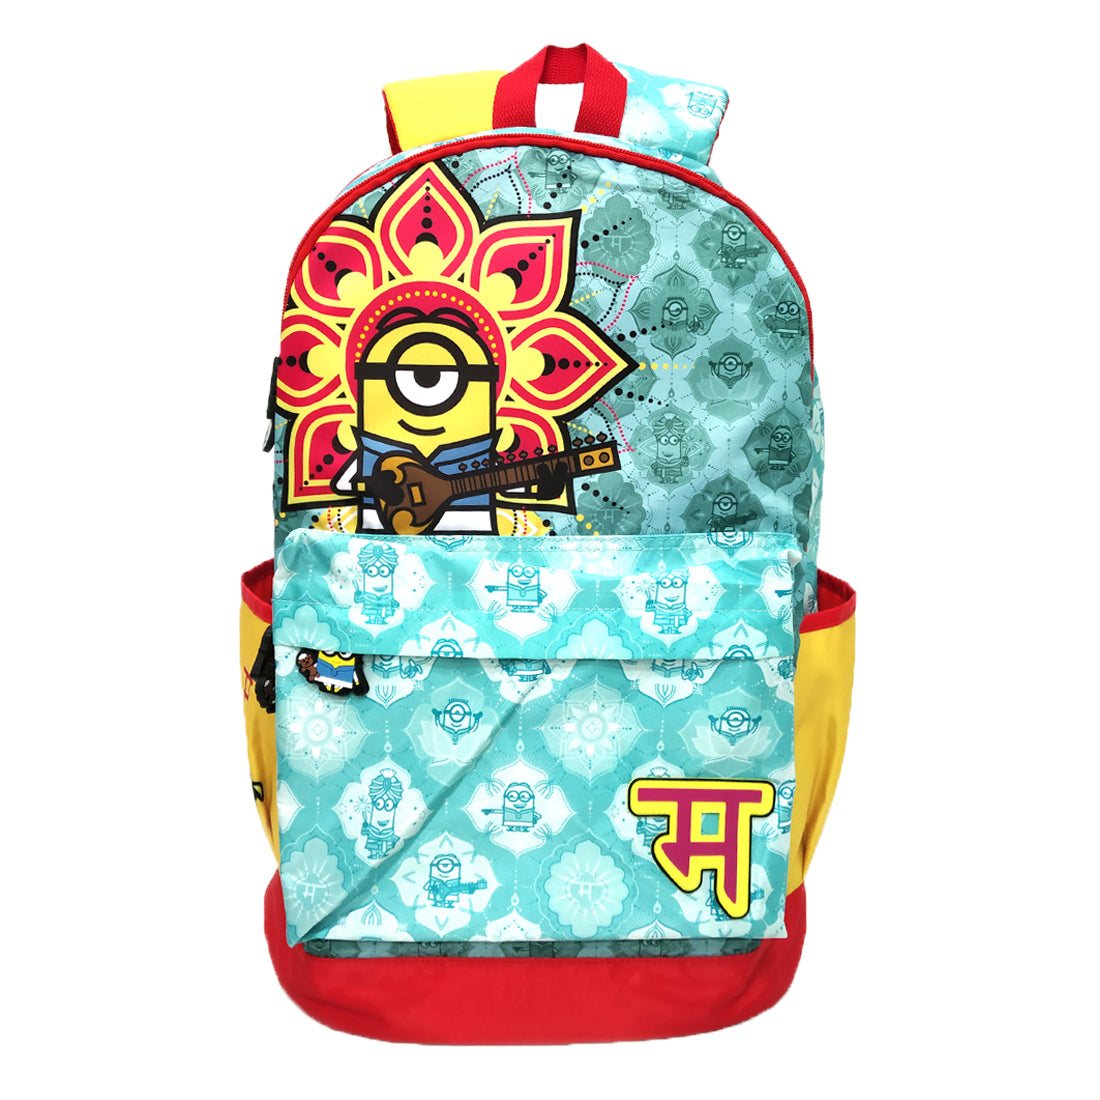 Minions Masala Backpack -My Baby Excels - India - www.superherotoystore.com